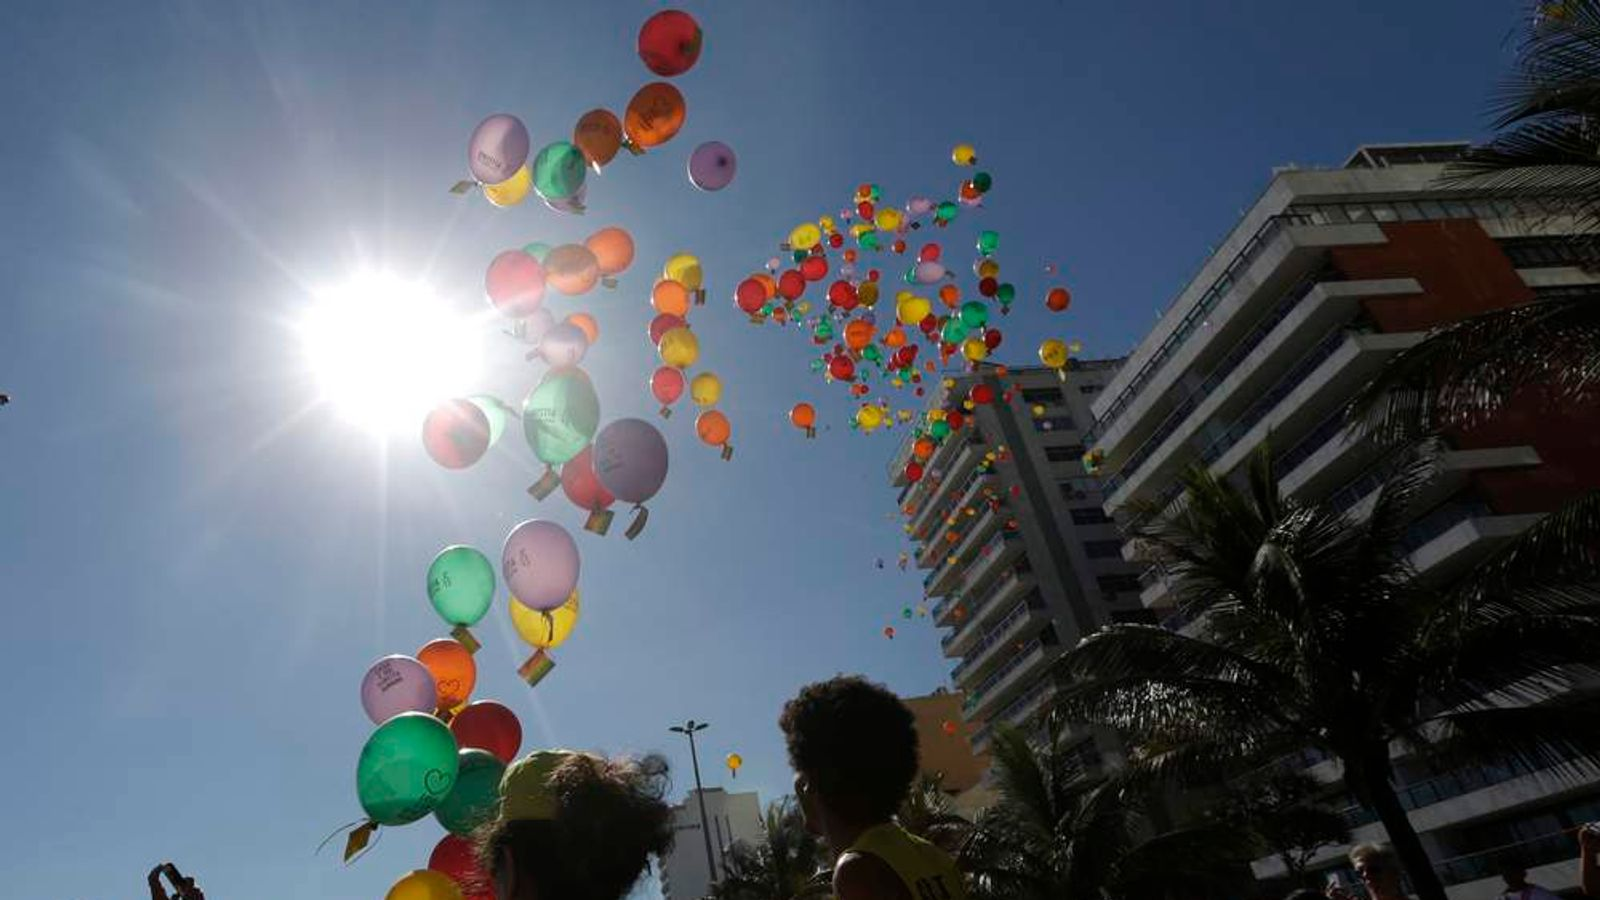 Demonstrators release balloons with messages against Russia's President Vladimir Putin and anti-gay laws, ahead of the Sochi 2014 Olympic Games, in Rio de Janeiro